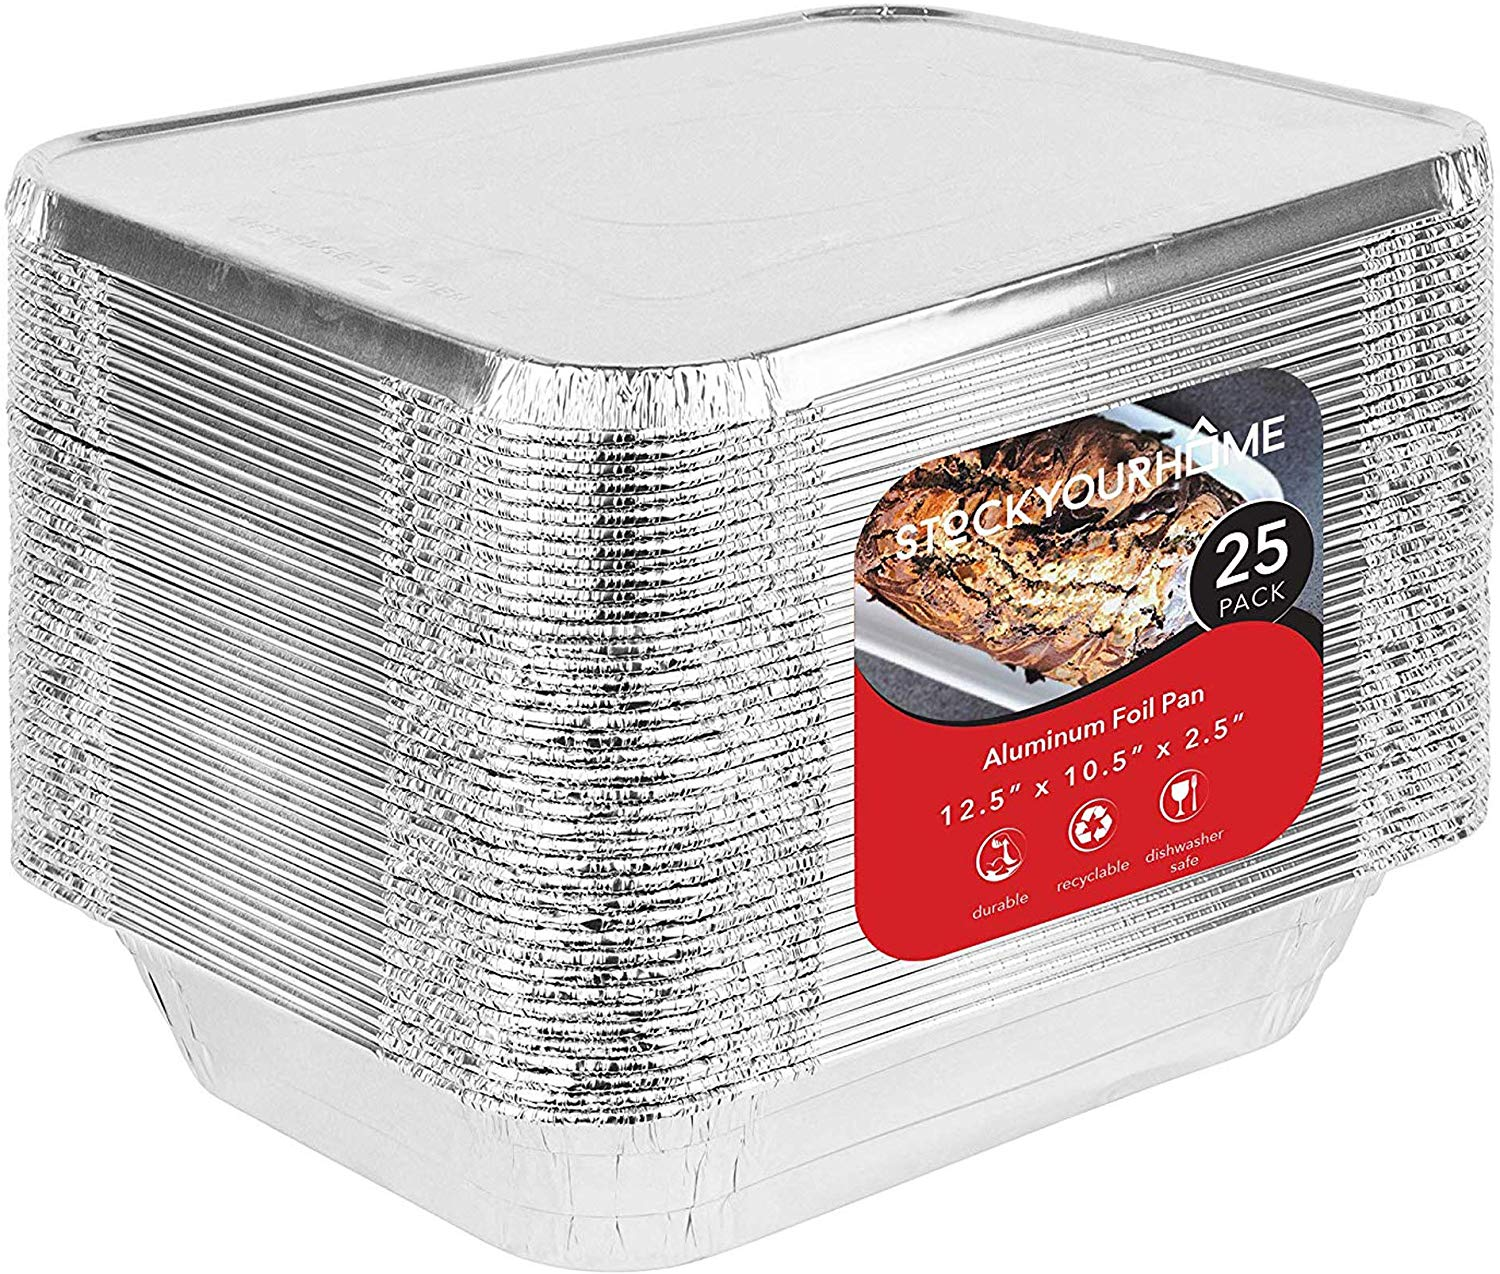 1. Stock Your Home Foil Pans with Lids